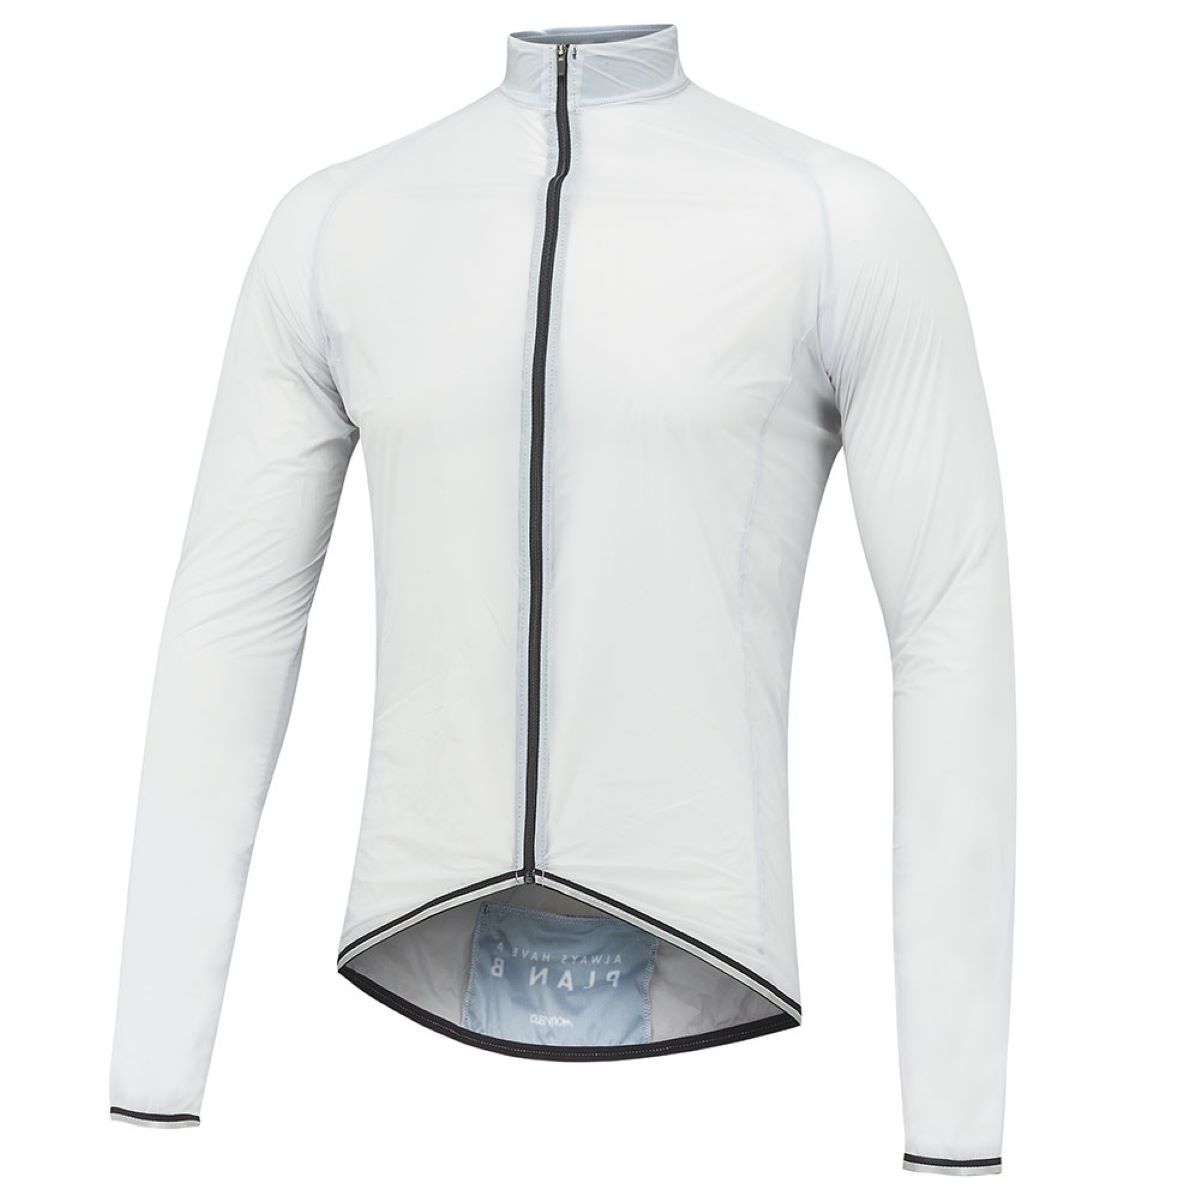 Veste Morvelo Plan B Race Cape - XL Plan B Vestes